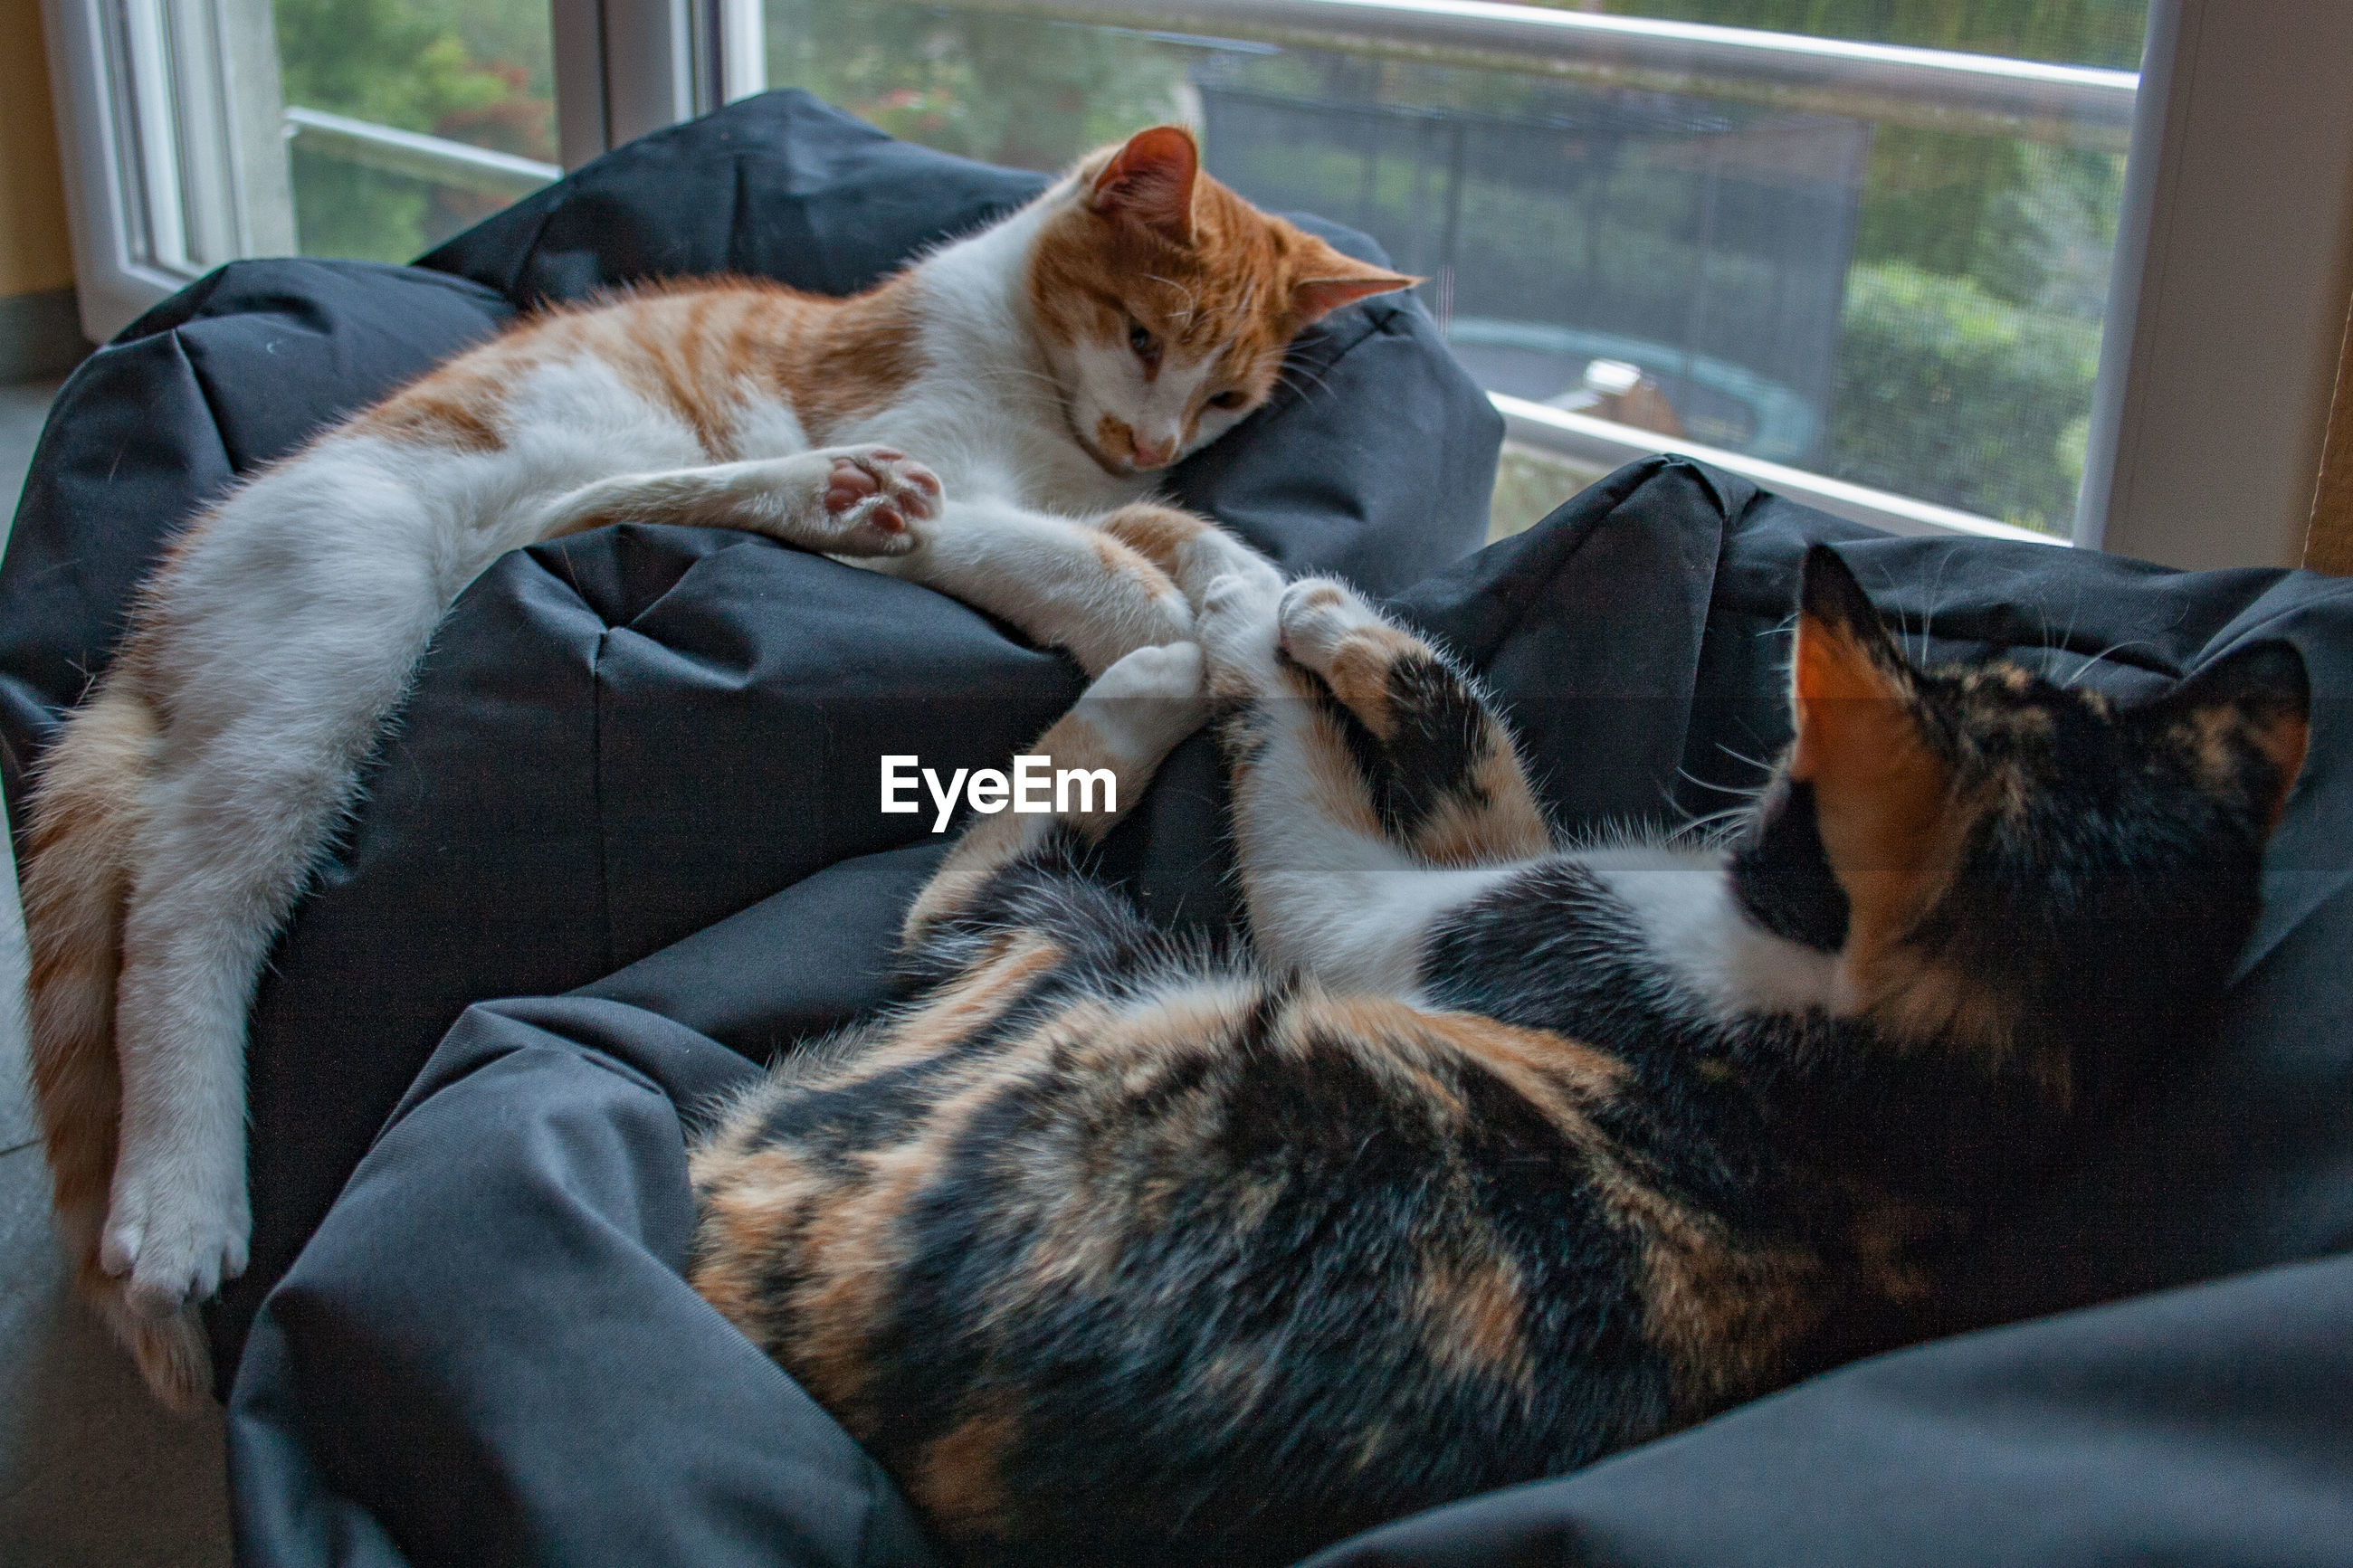 CATS RESTING IN THE HOME